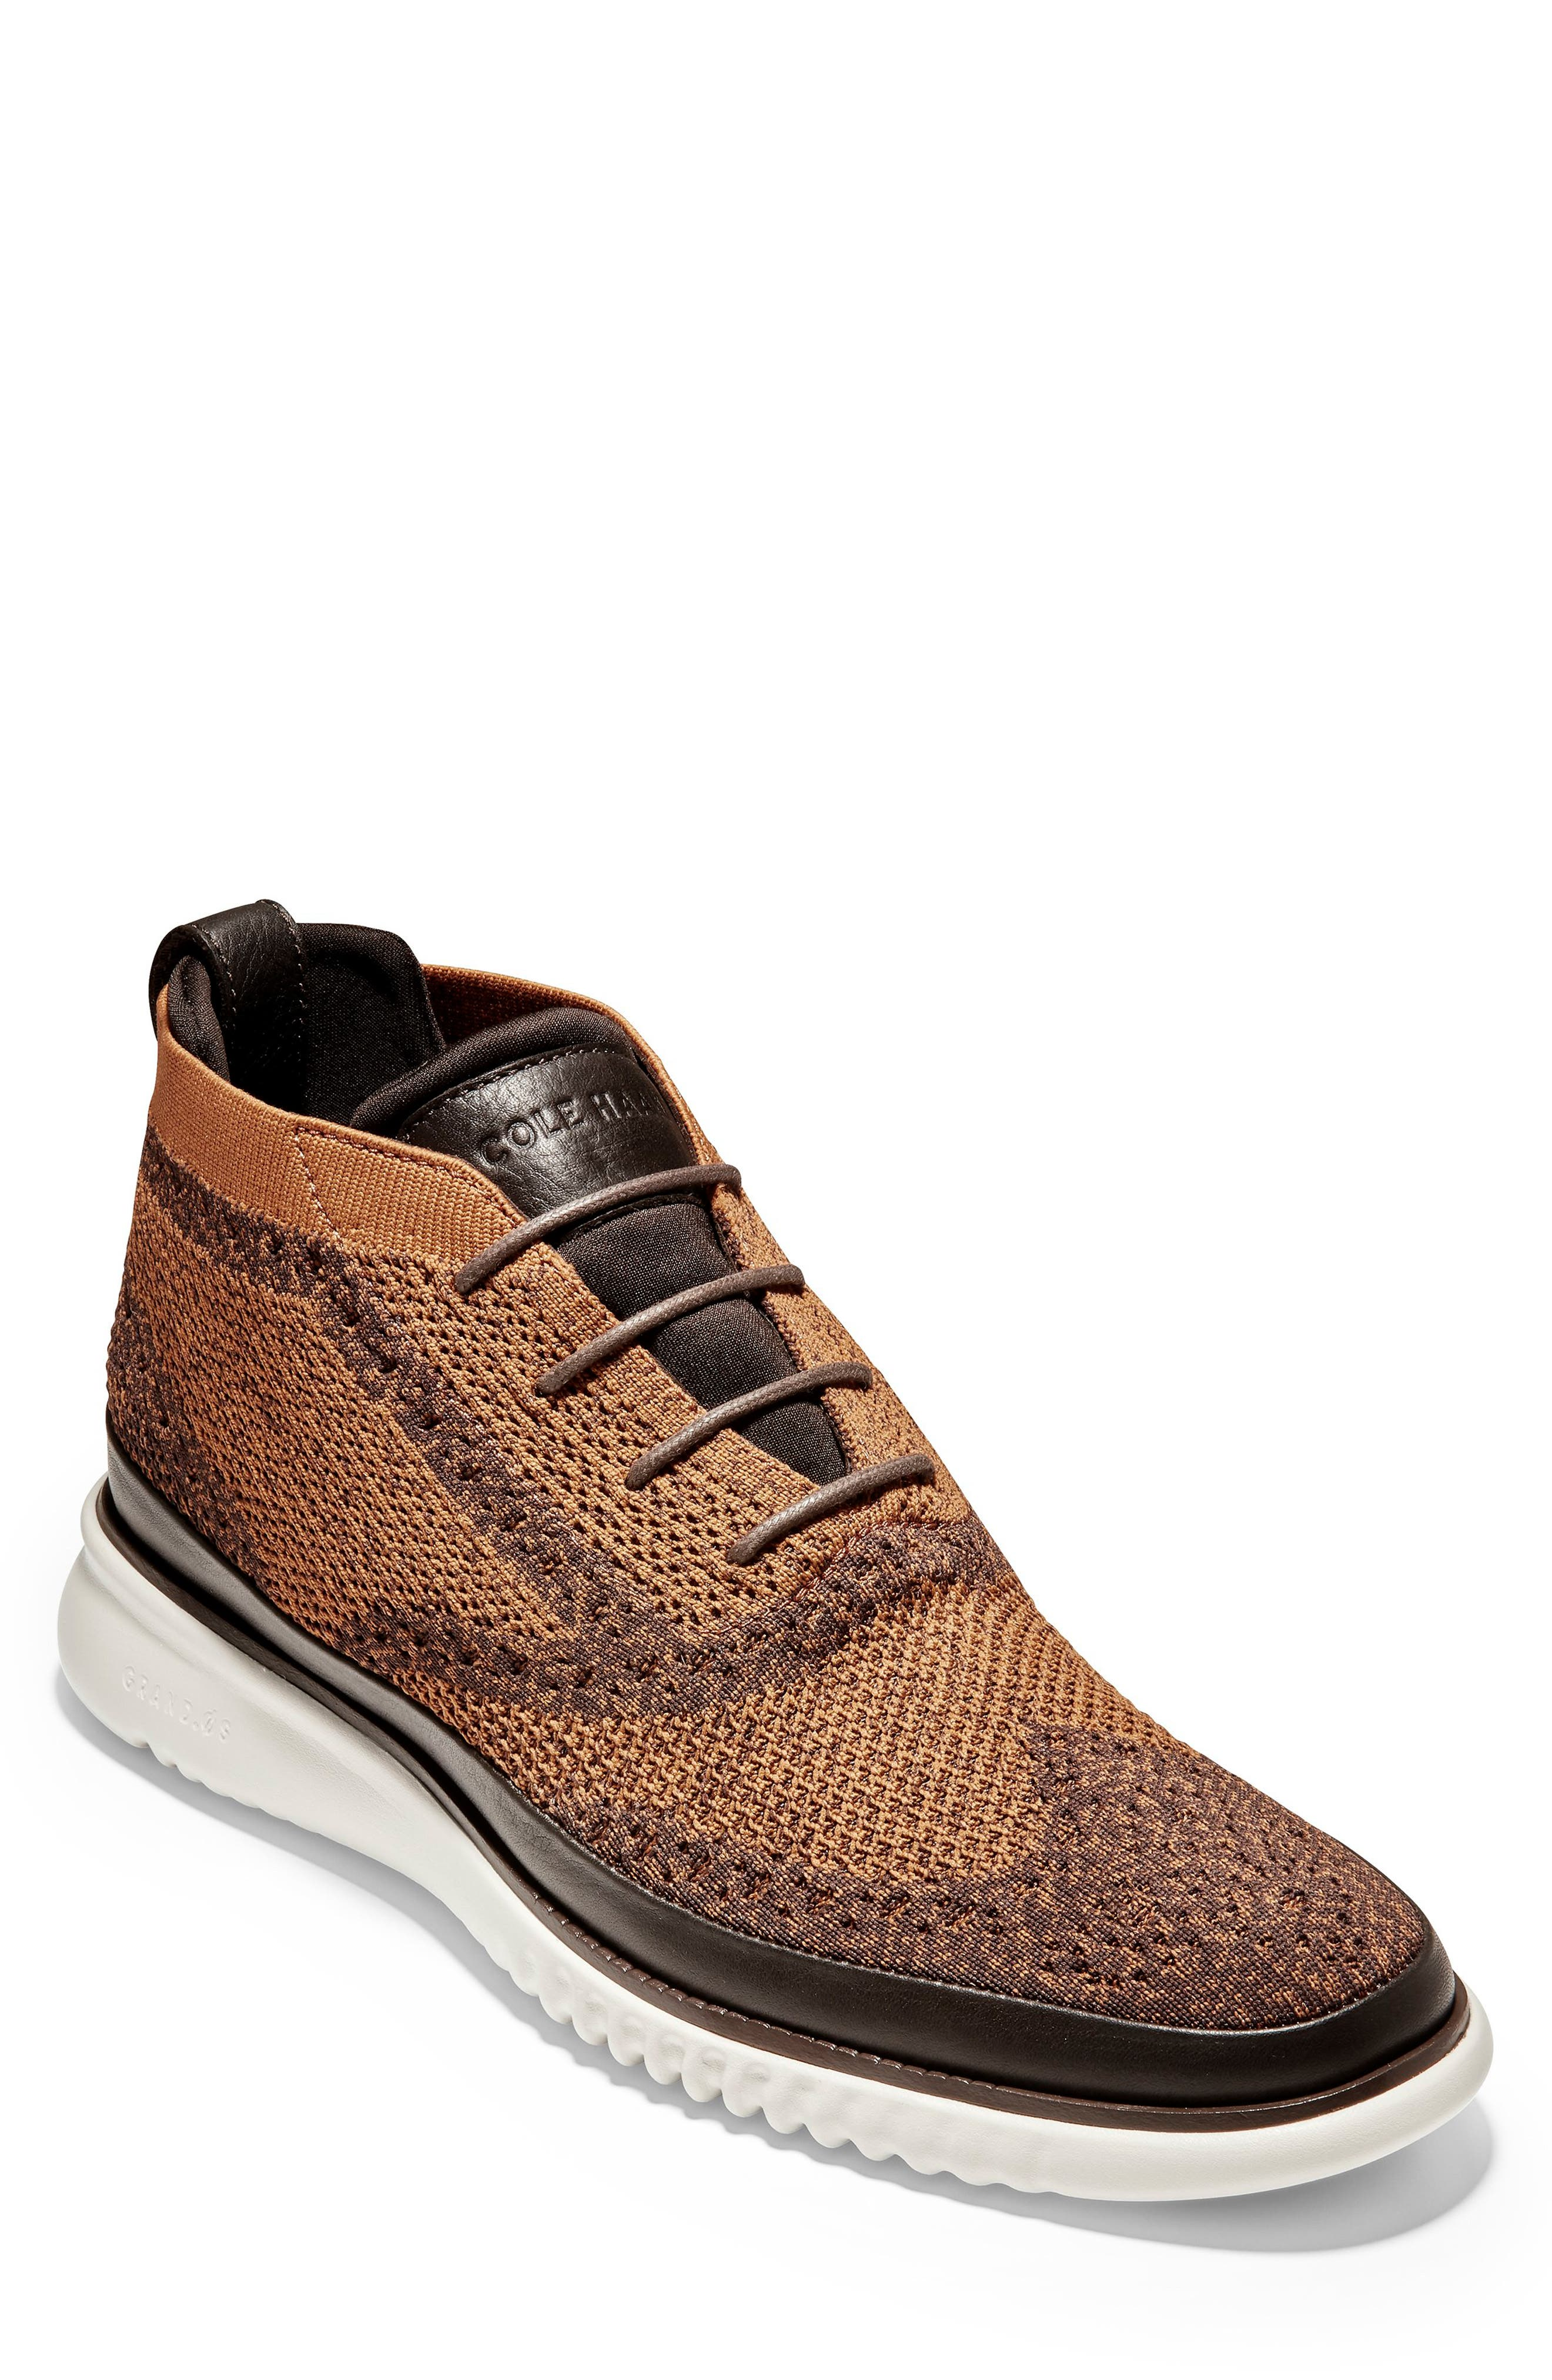 2.ZeroGrand Stitchlite Water Resistant Chukka Boot,                             Main thumbnail 1, color,                             BROWN HEATHERED KNIT